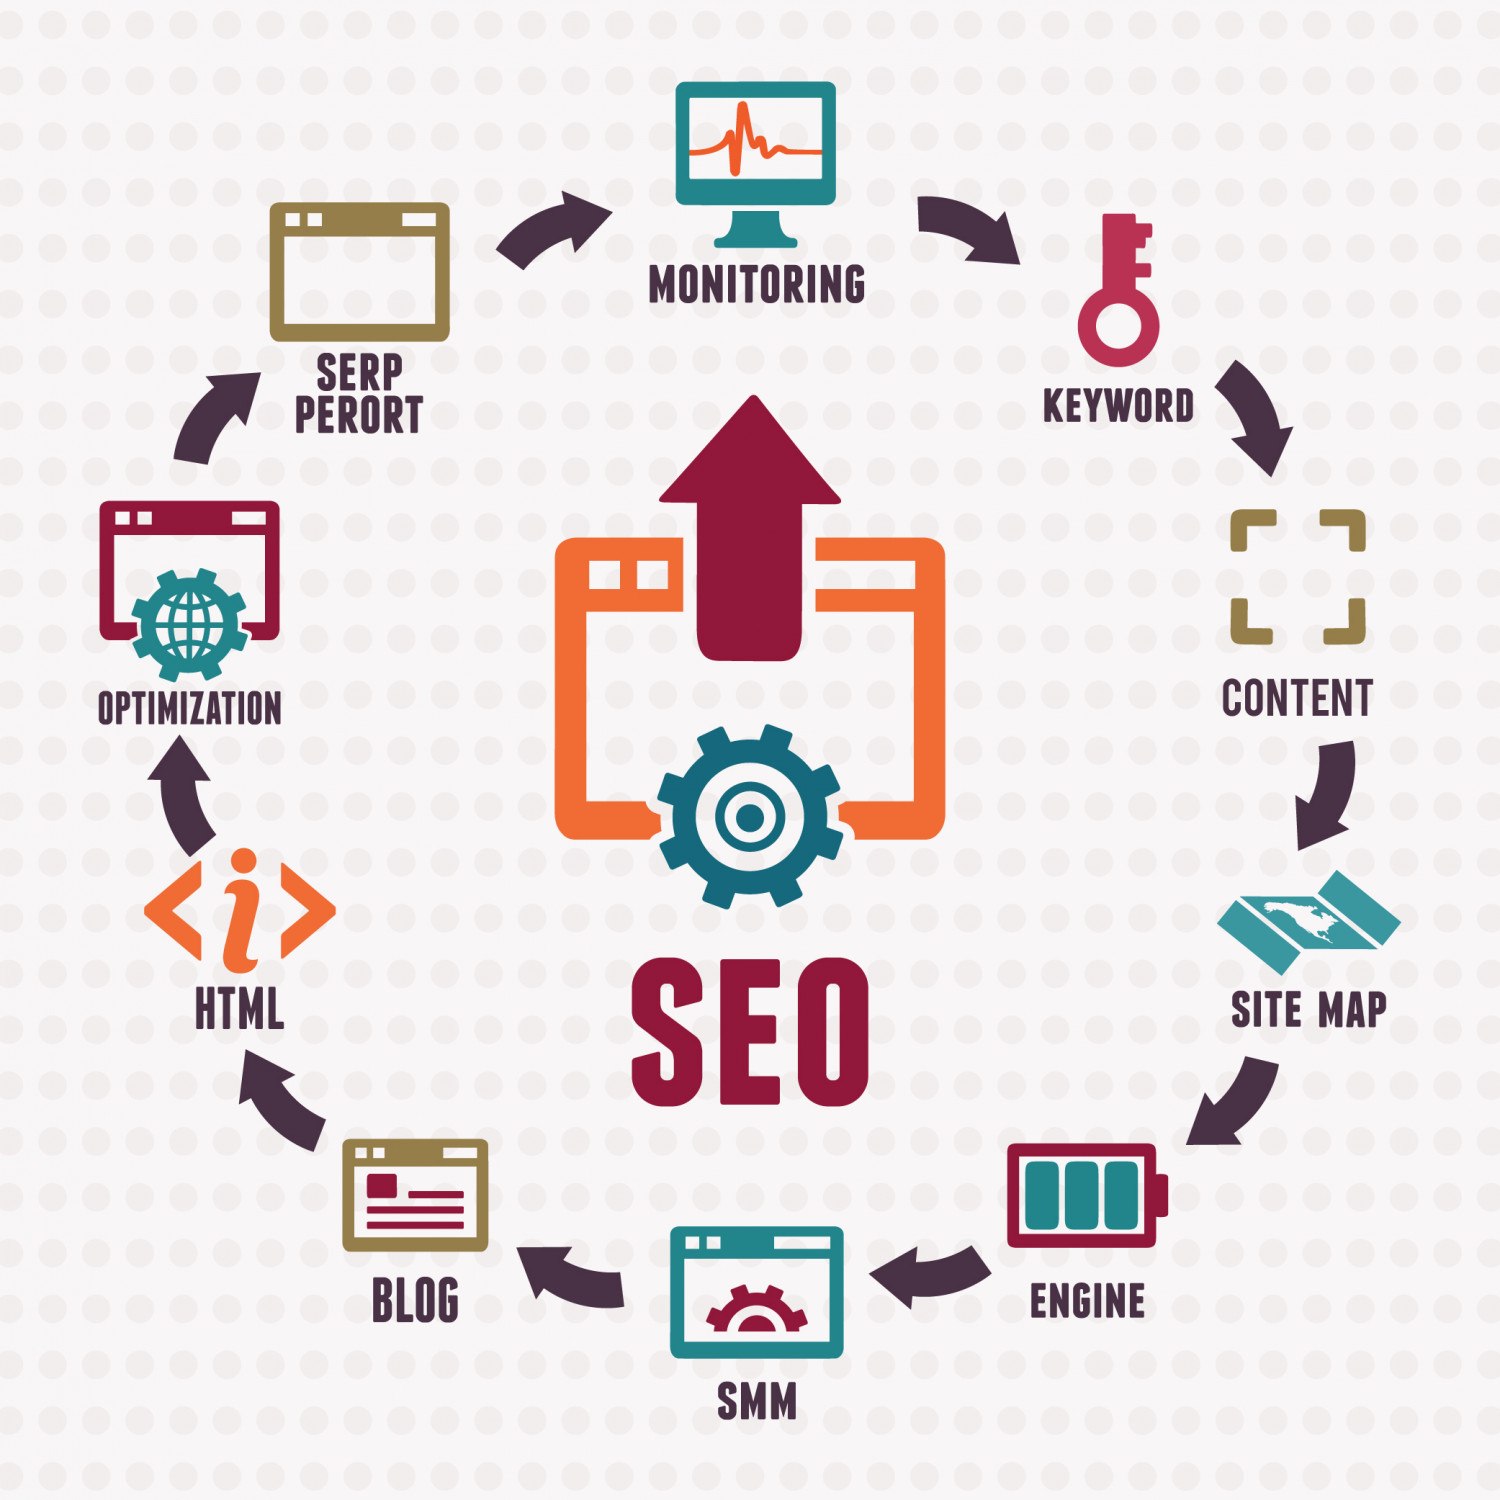 Process of Search Engine Optimization Infographic